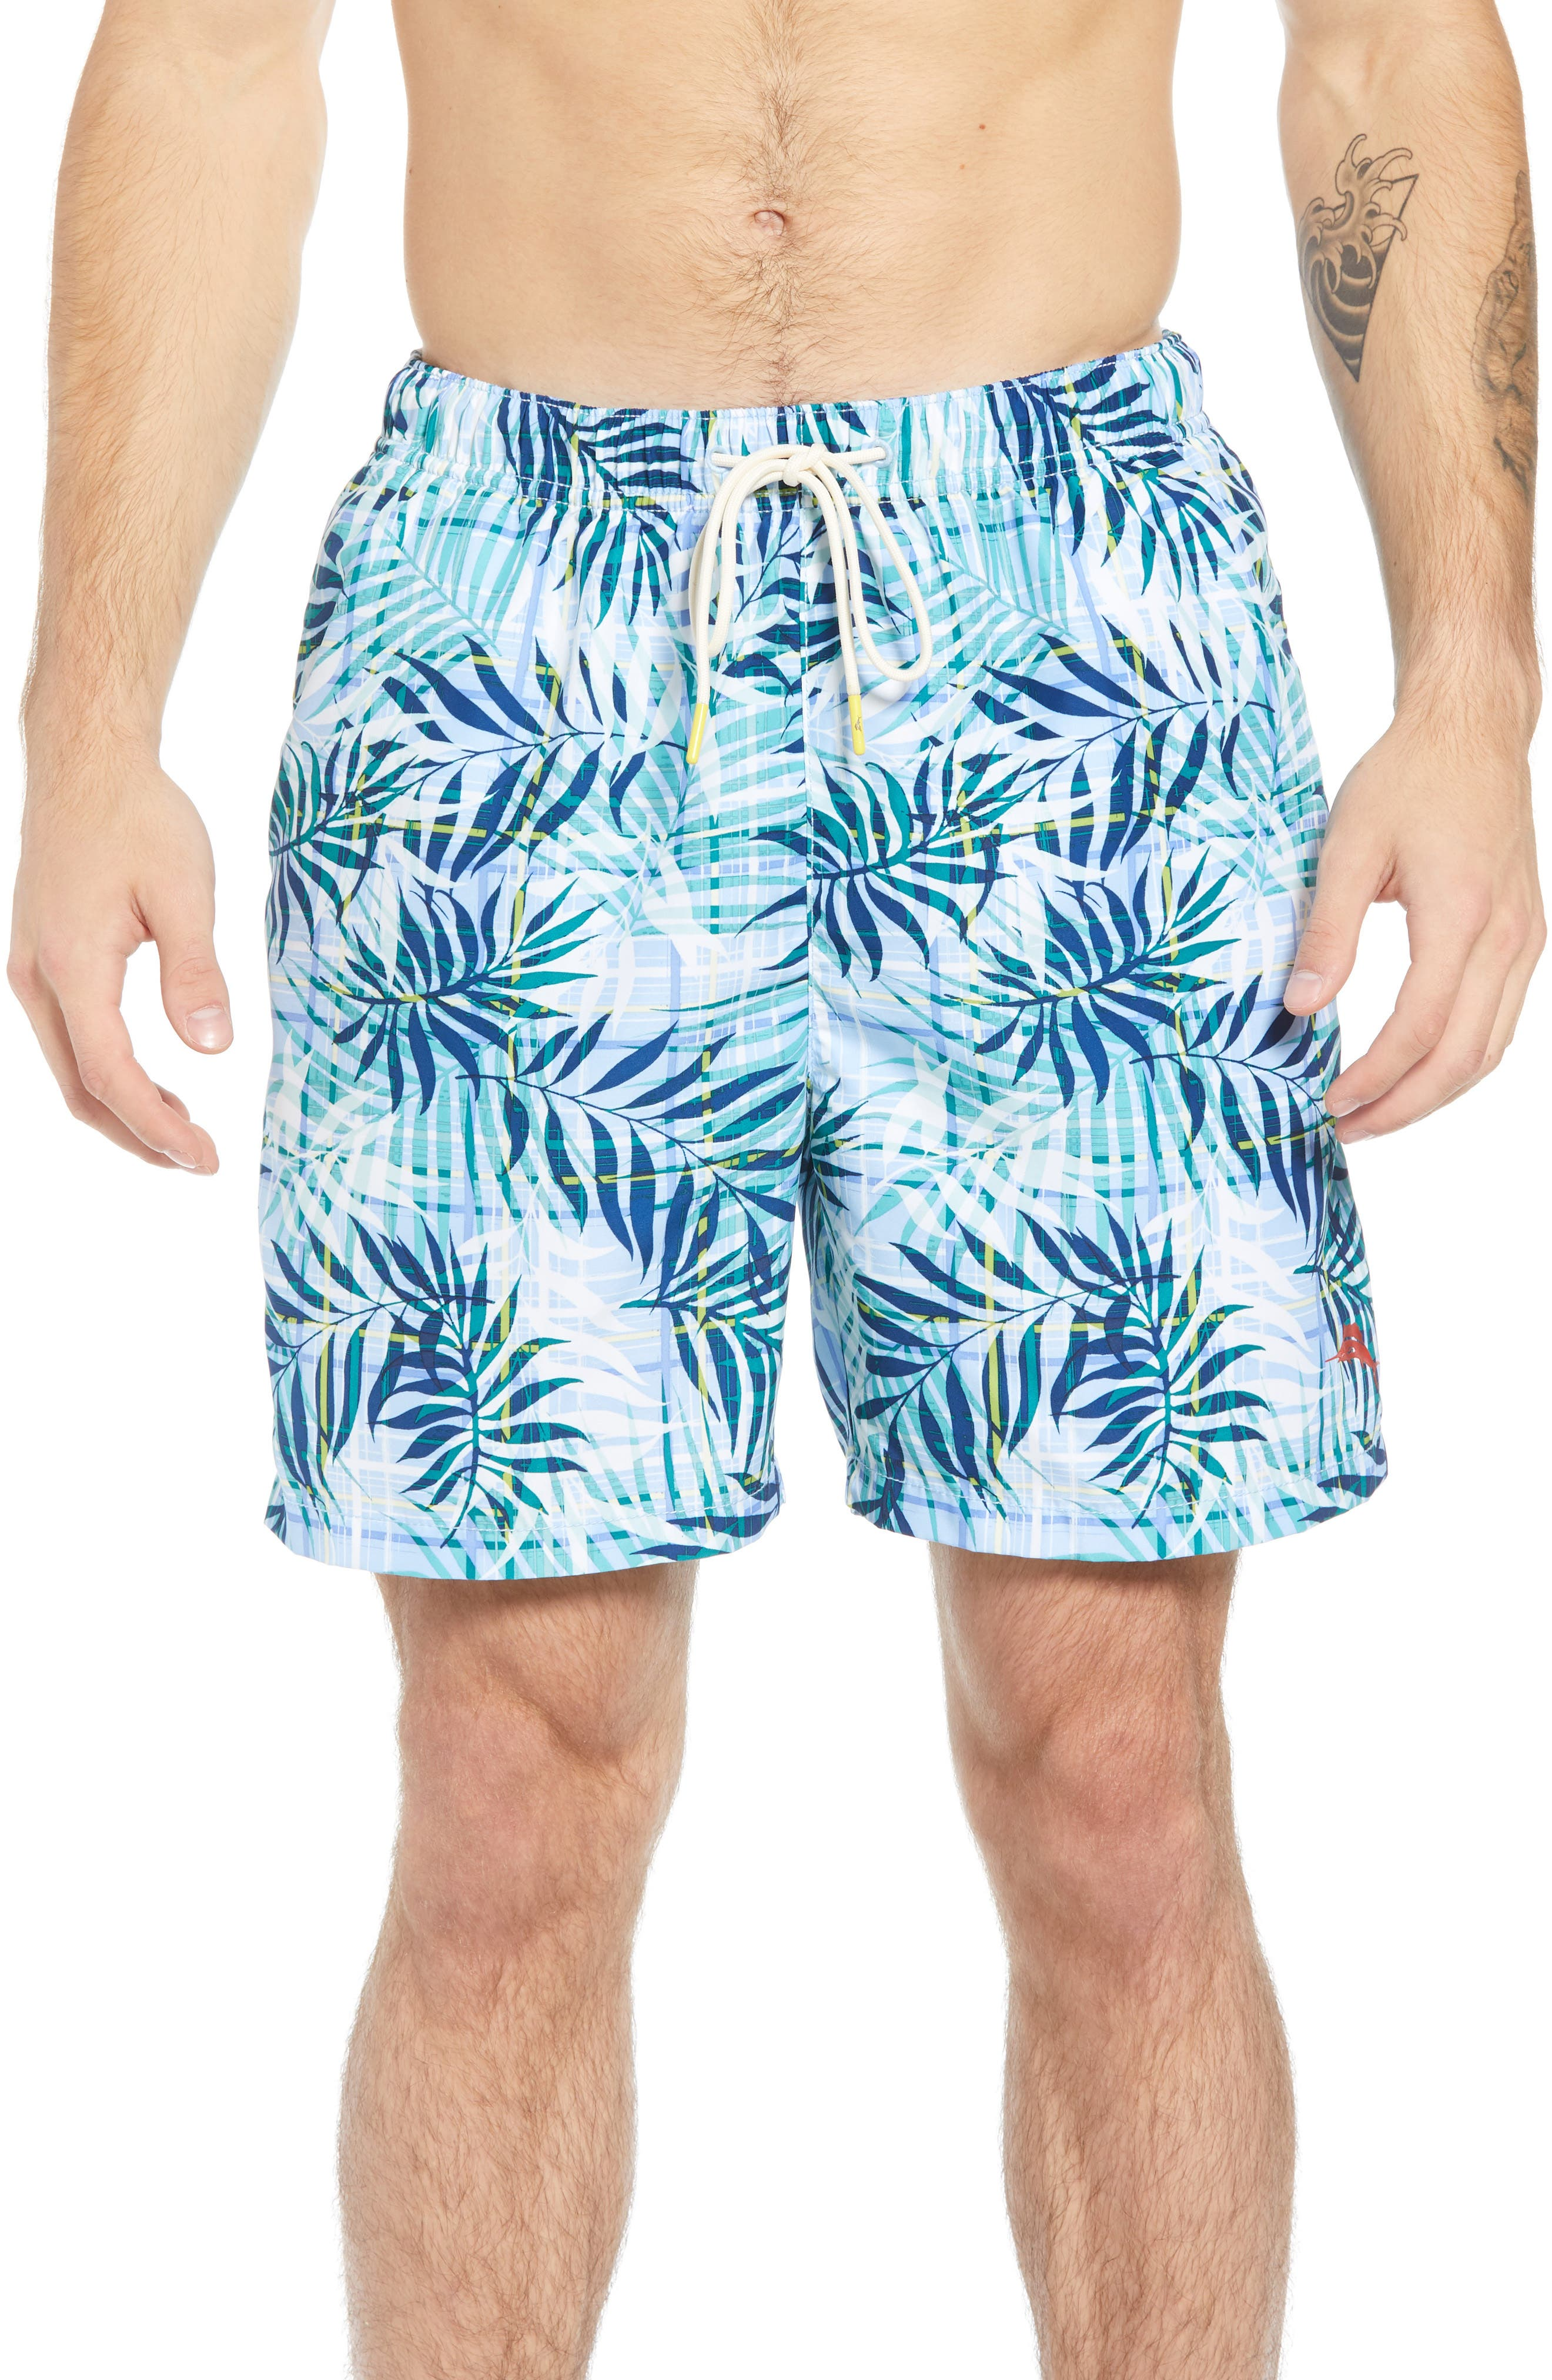 Naples Terraba Swim Trunks,                             Main thumbnail 1, color,                             AQUA ICE